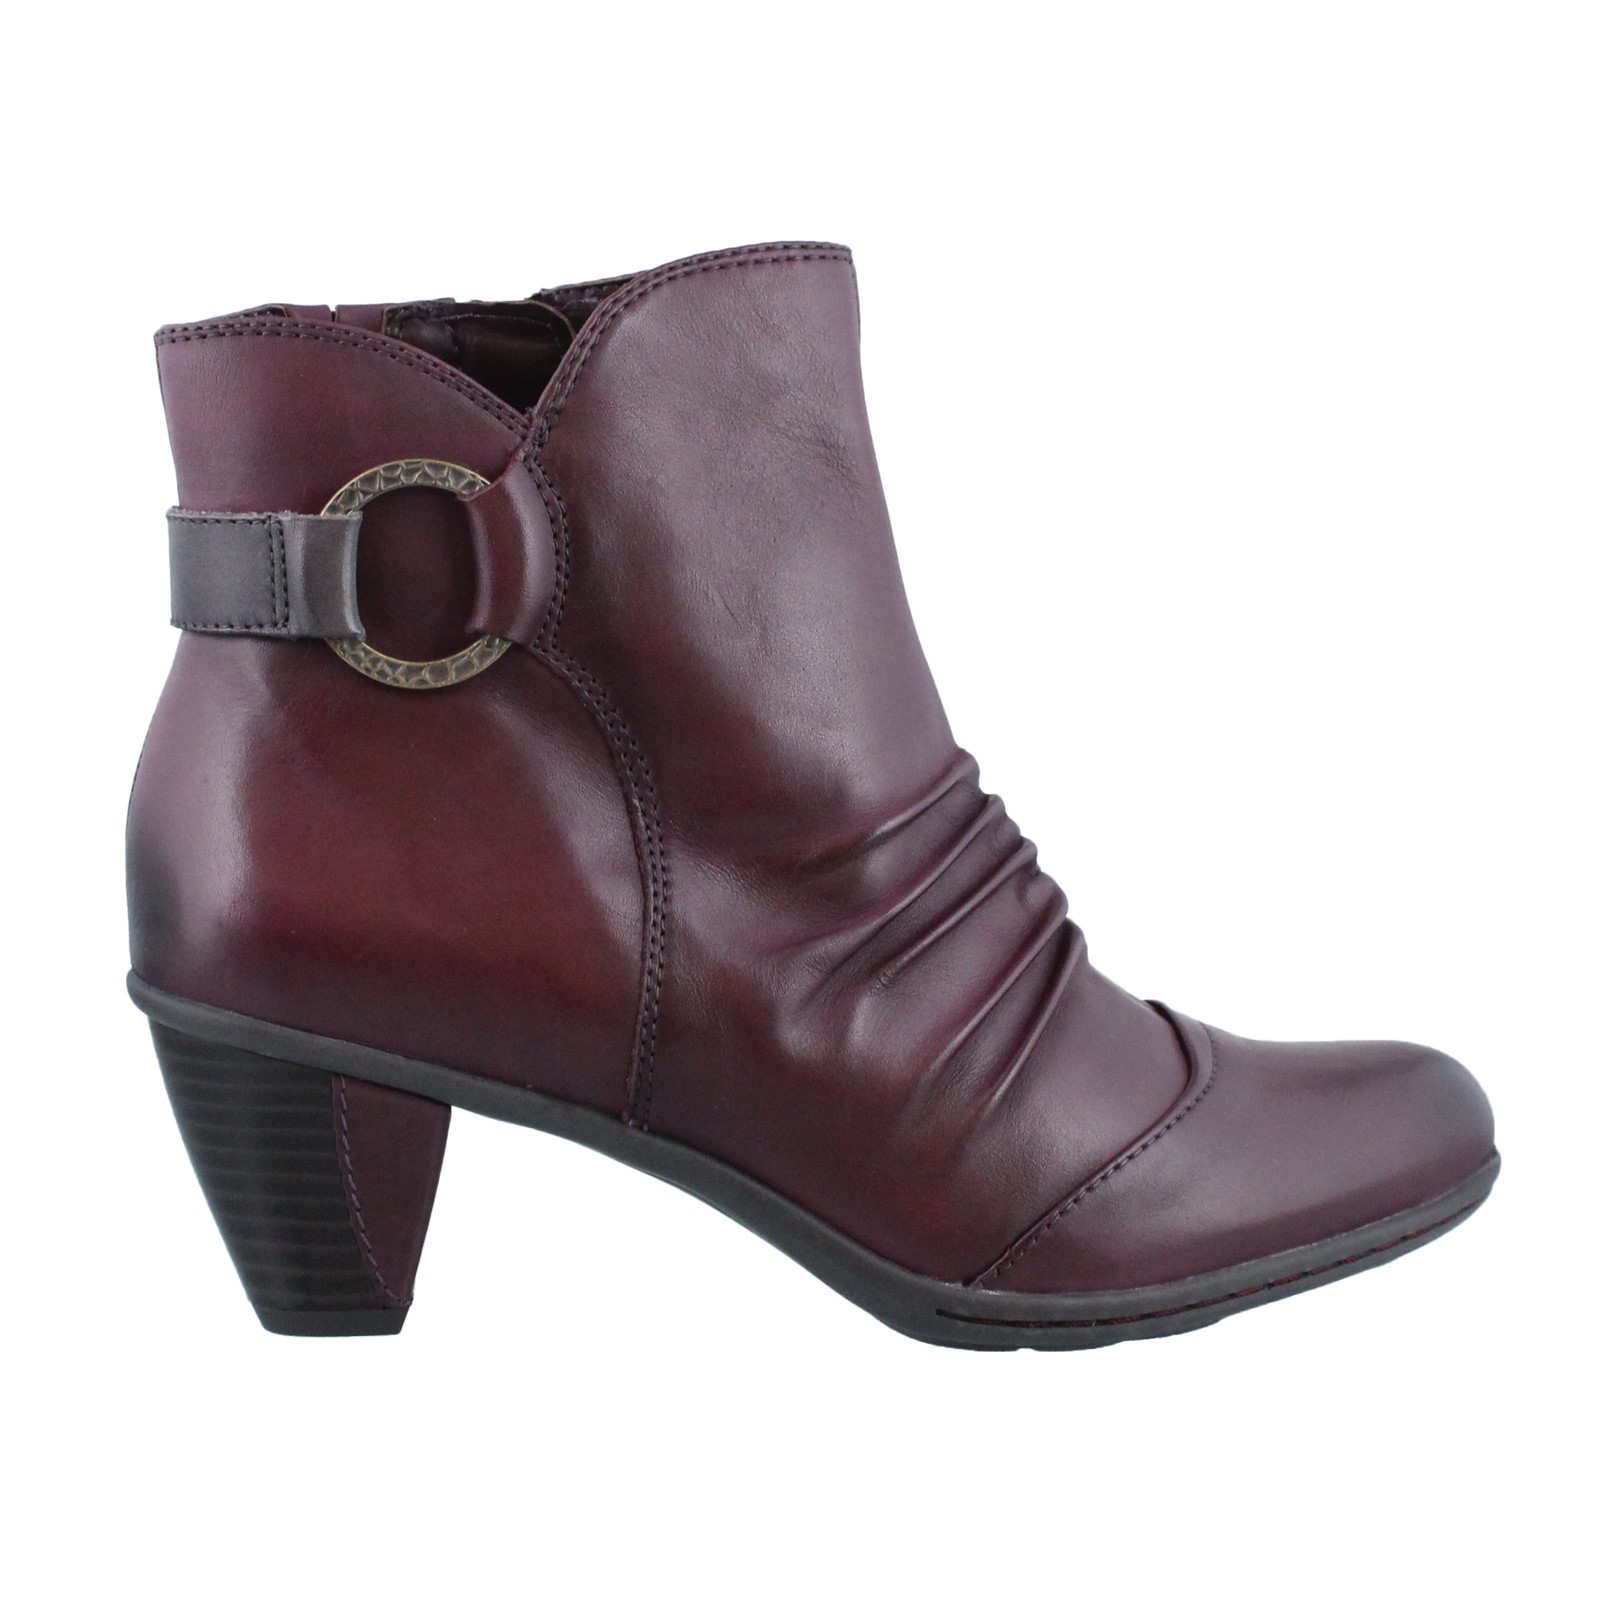 Women's Earth, Topaz Ankle Boots